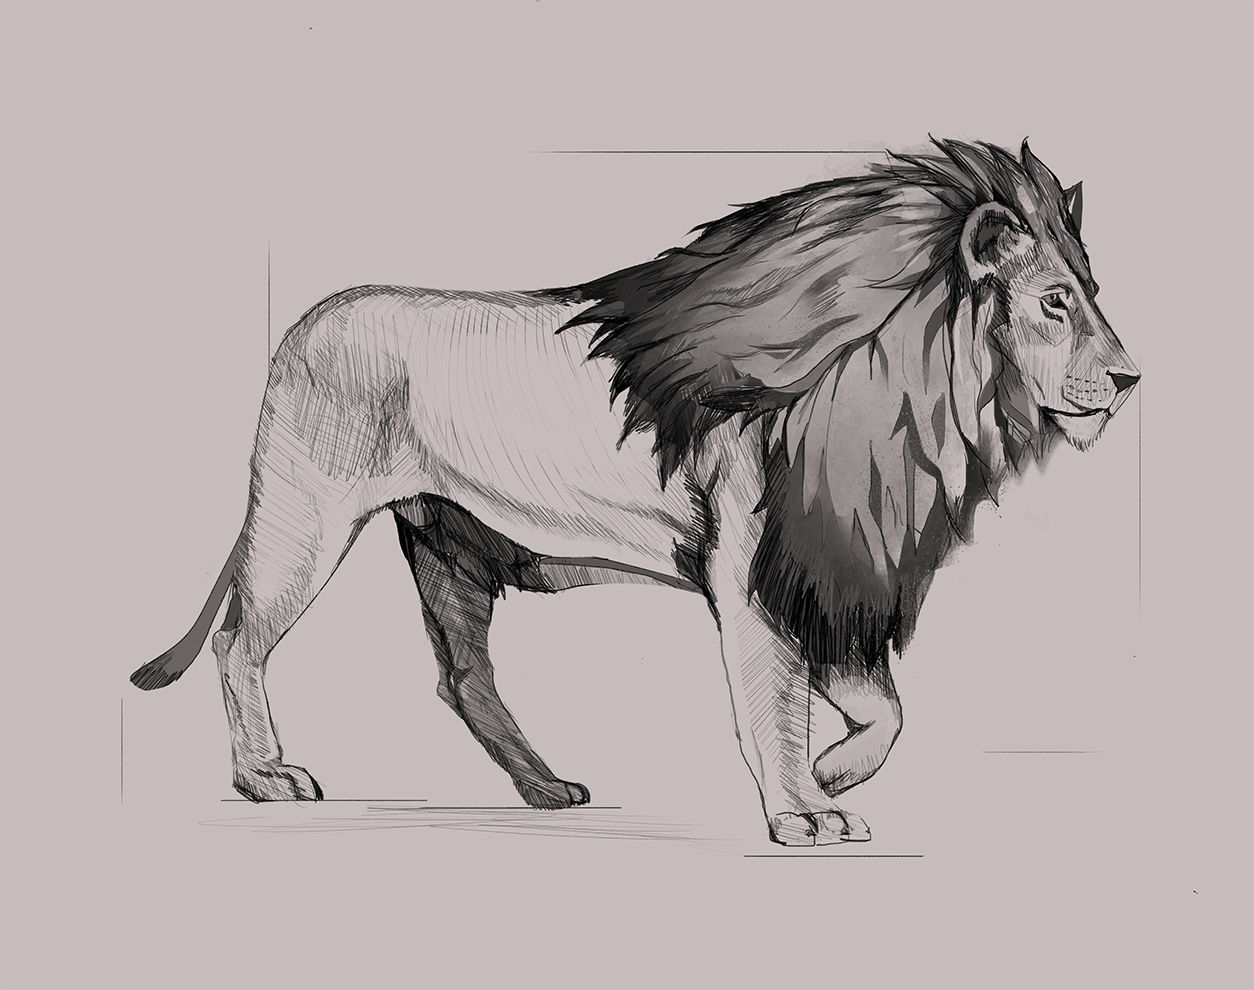 Lion_DLsDrawing.png